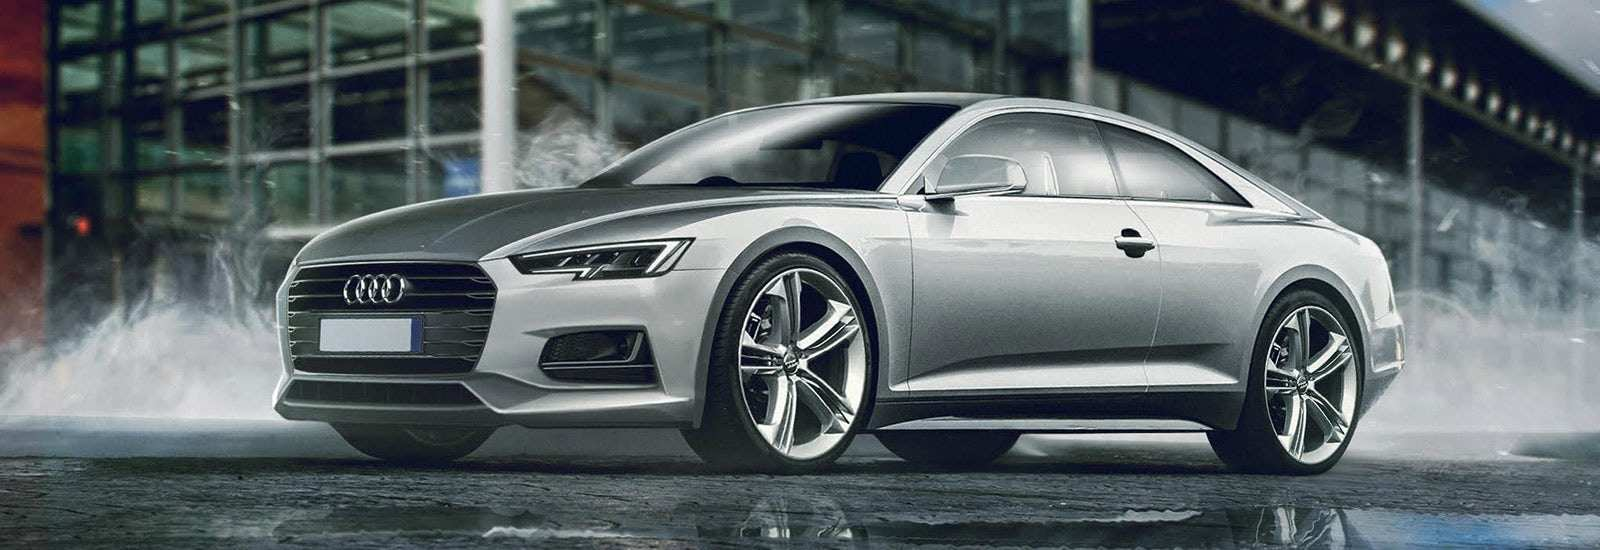 37 New 2020 Audi A9 Pictures